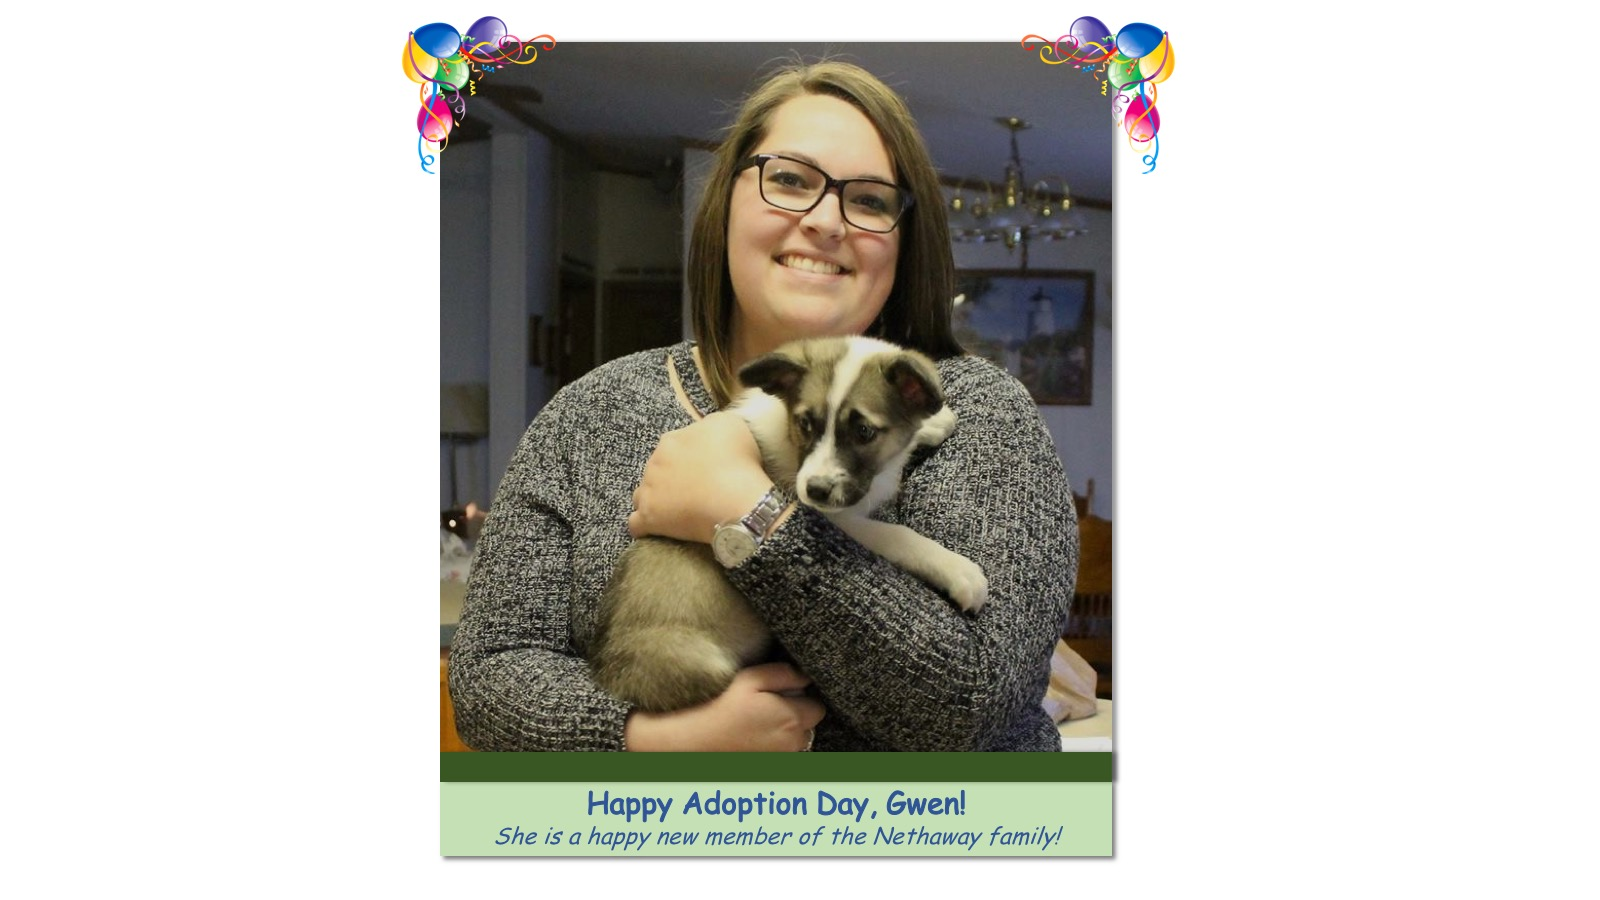 Gwen_Adoption_Photo_2018.jpg